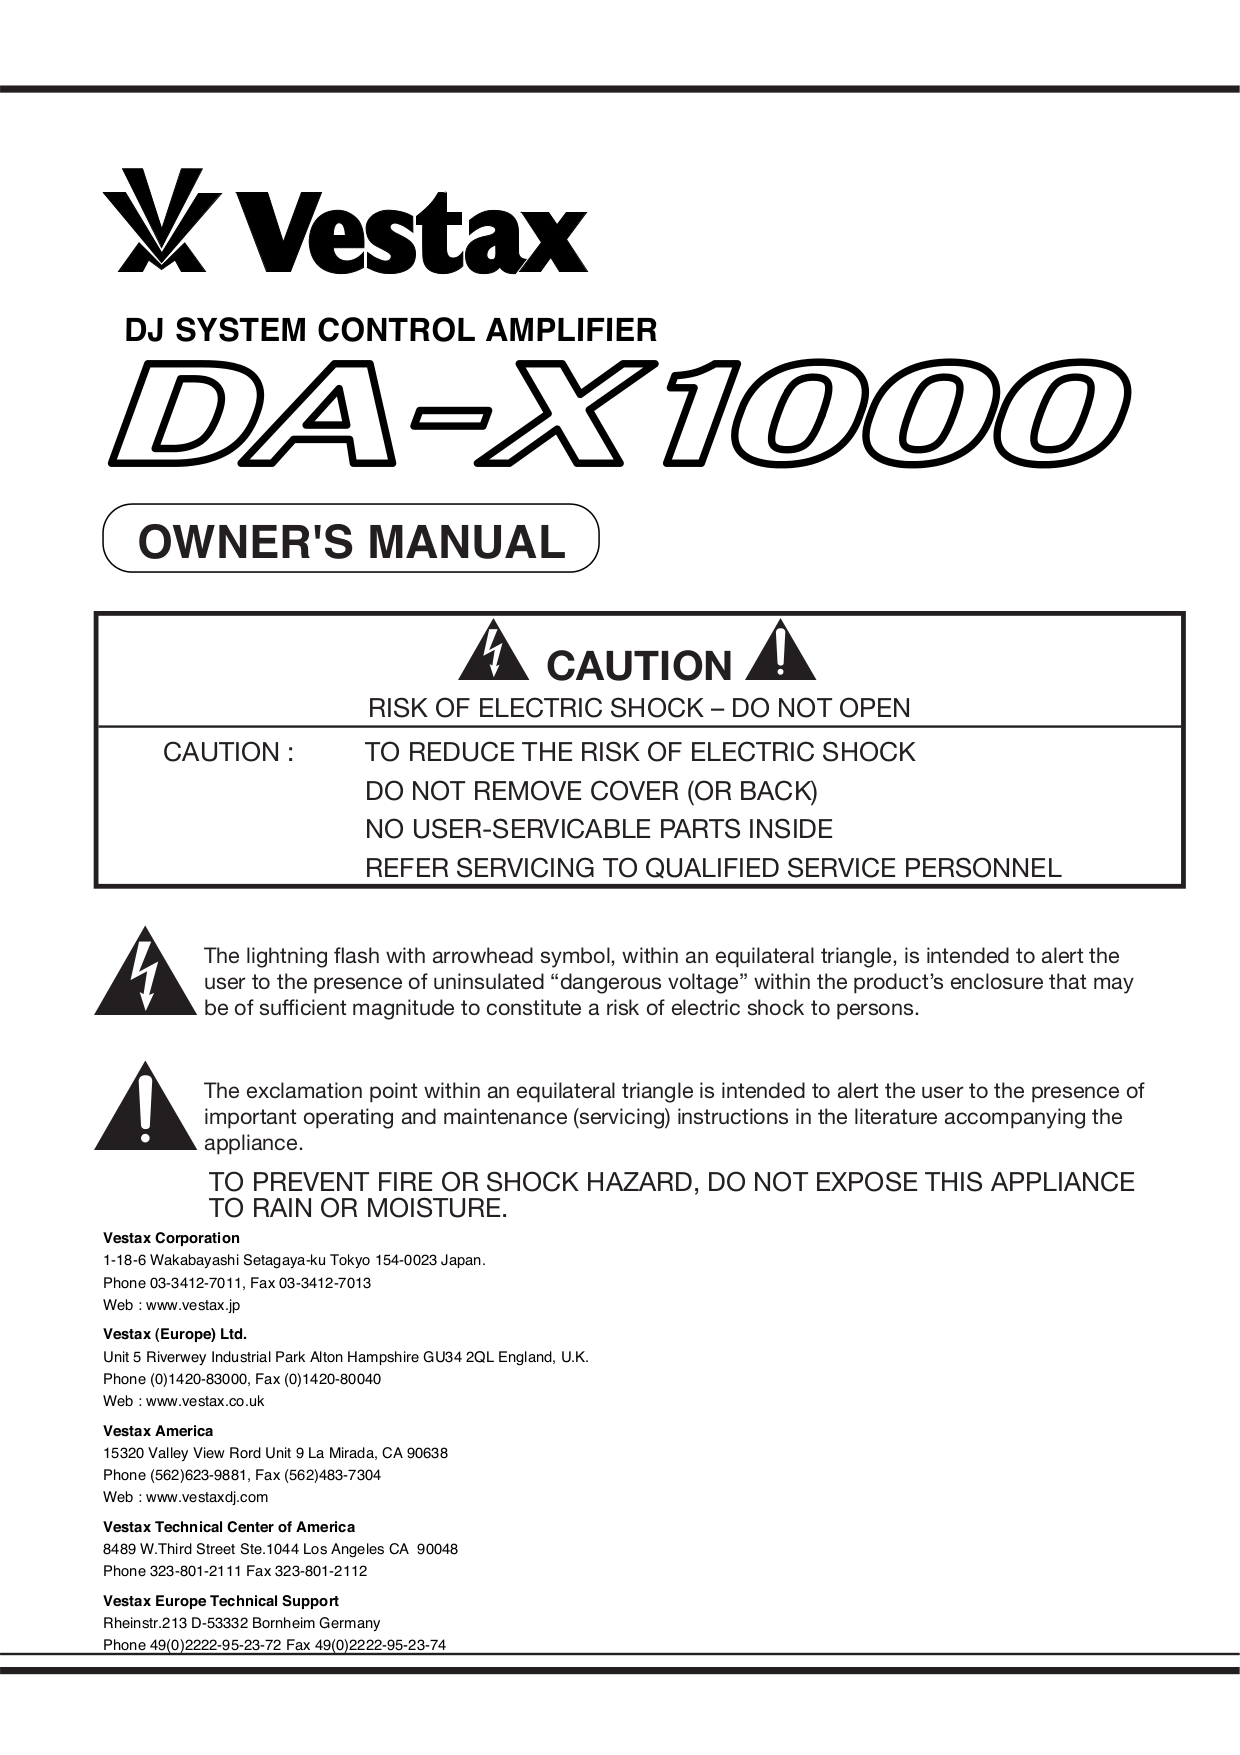 pdf for Vestax Amp DA-X1000 manual